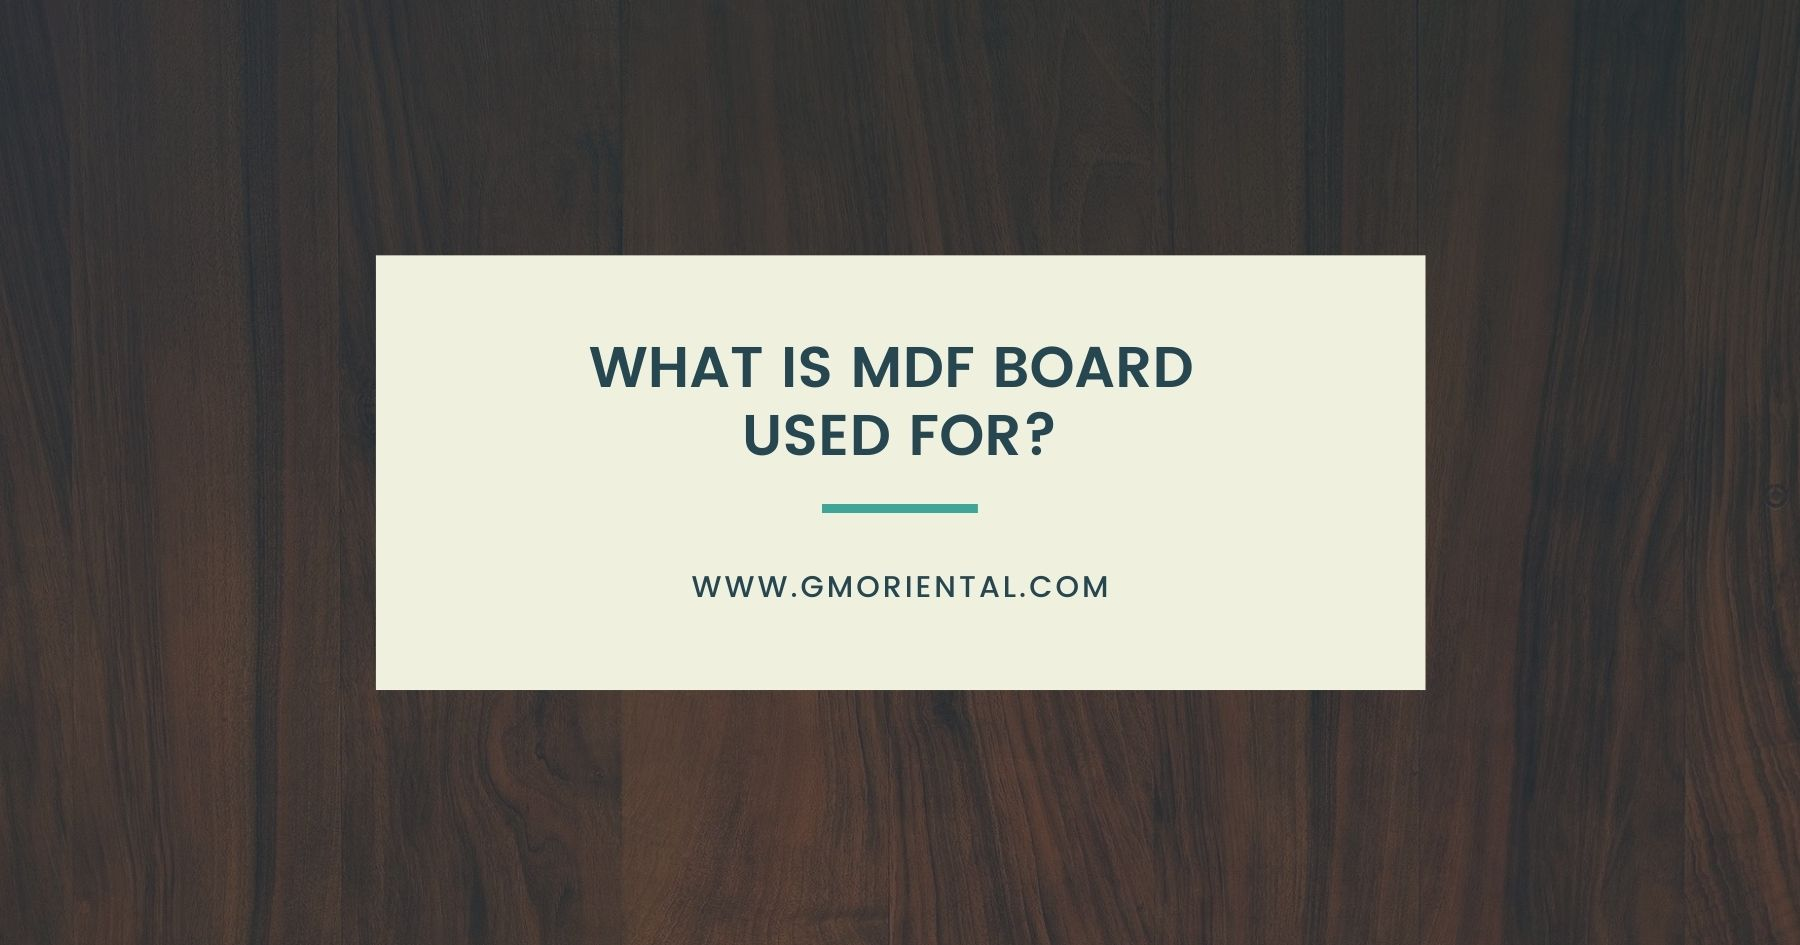 What Is MDF Board Used For?